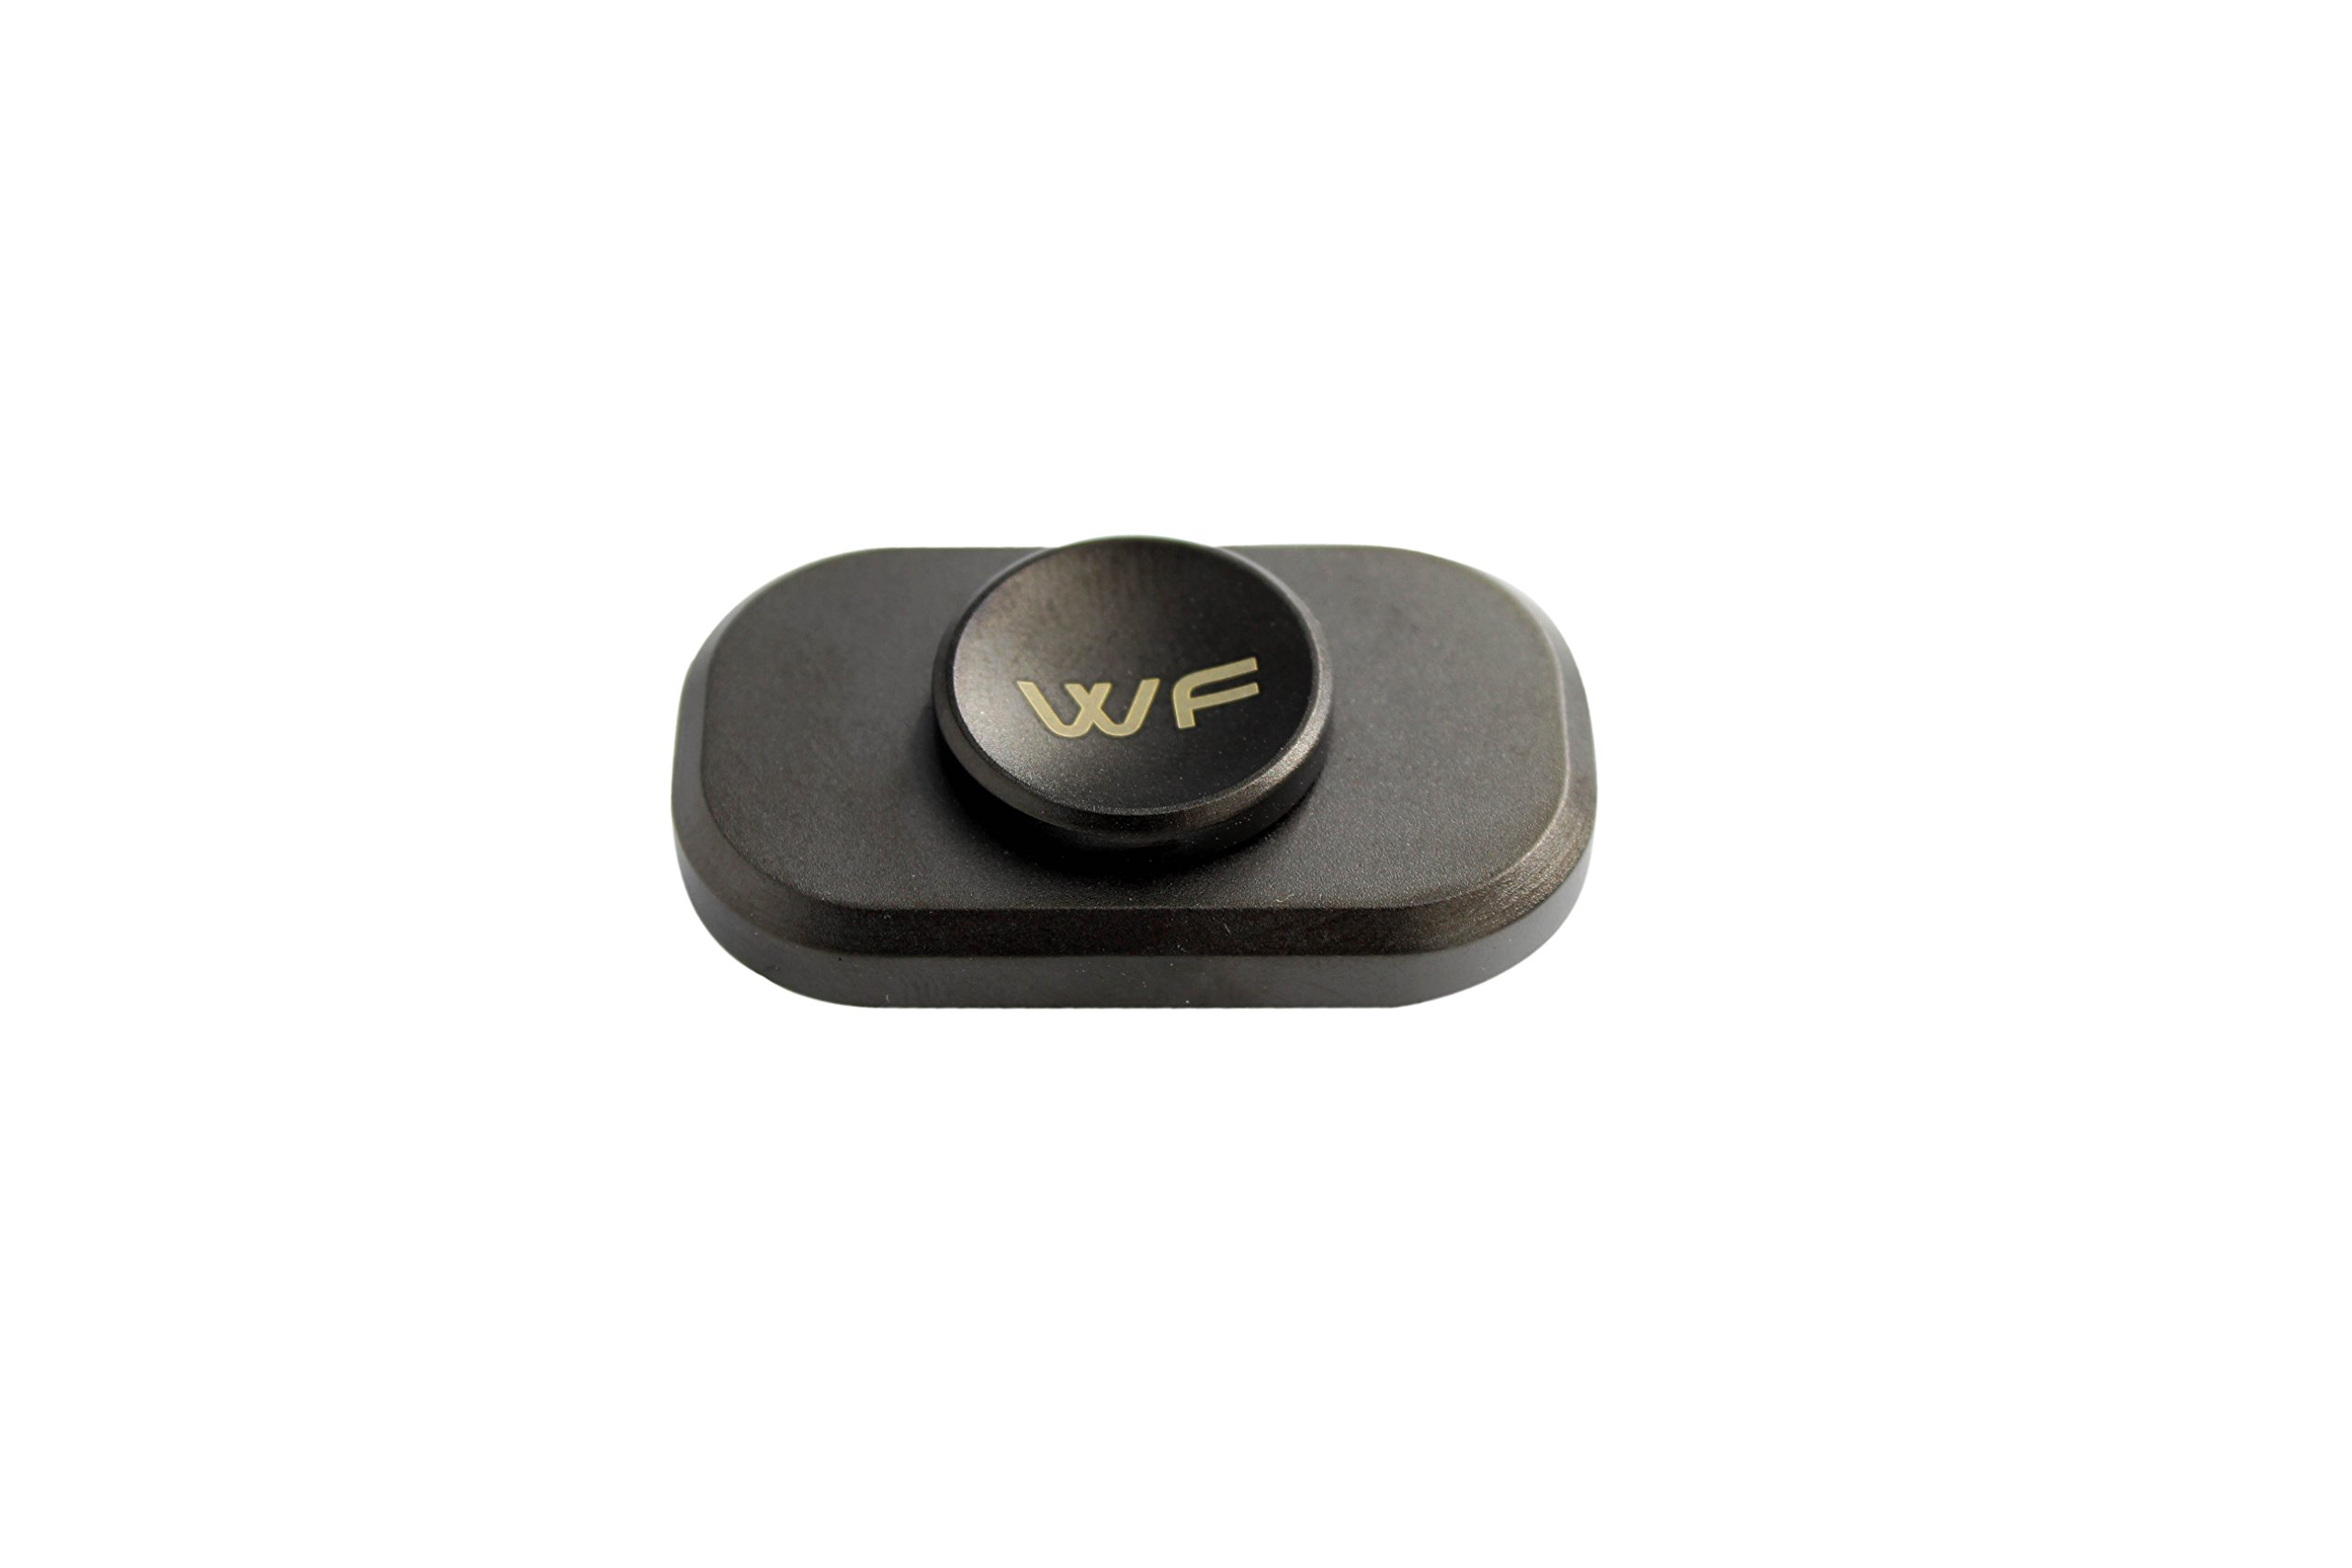 WeFidget Original Mini The Bar Premium Hand Fidget Spinner, Designed for Stress and Anxiety Relief. Metal Travel Case Included by WeFidget